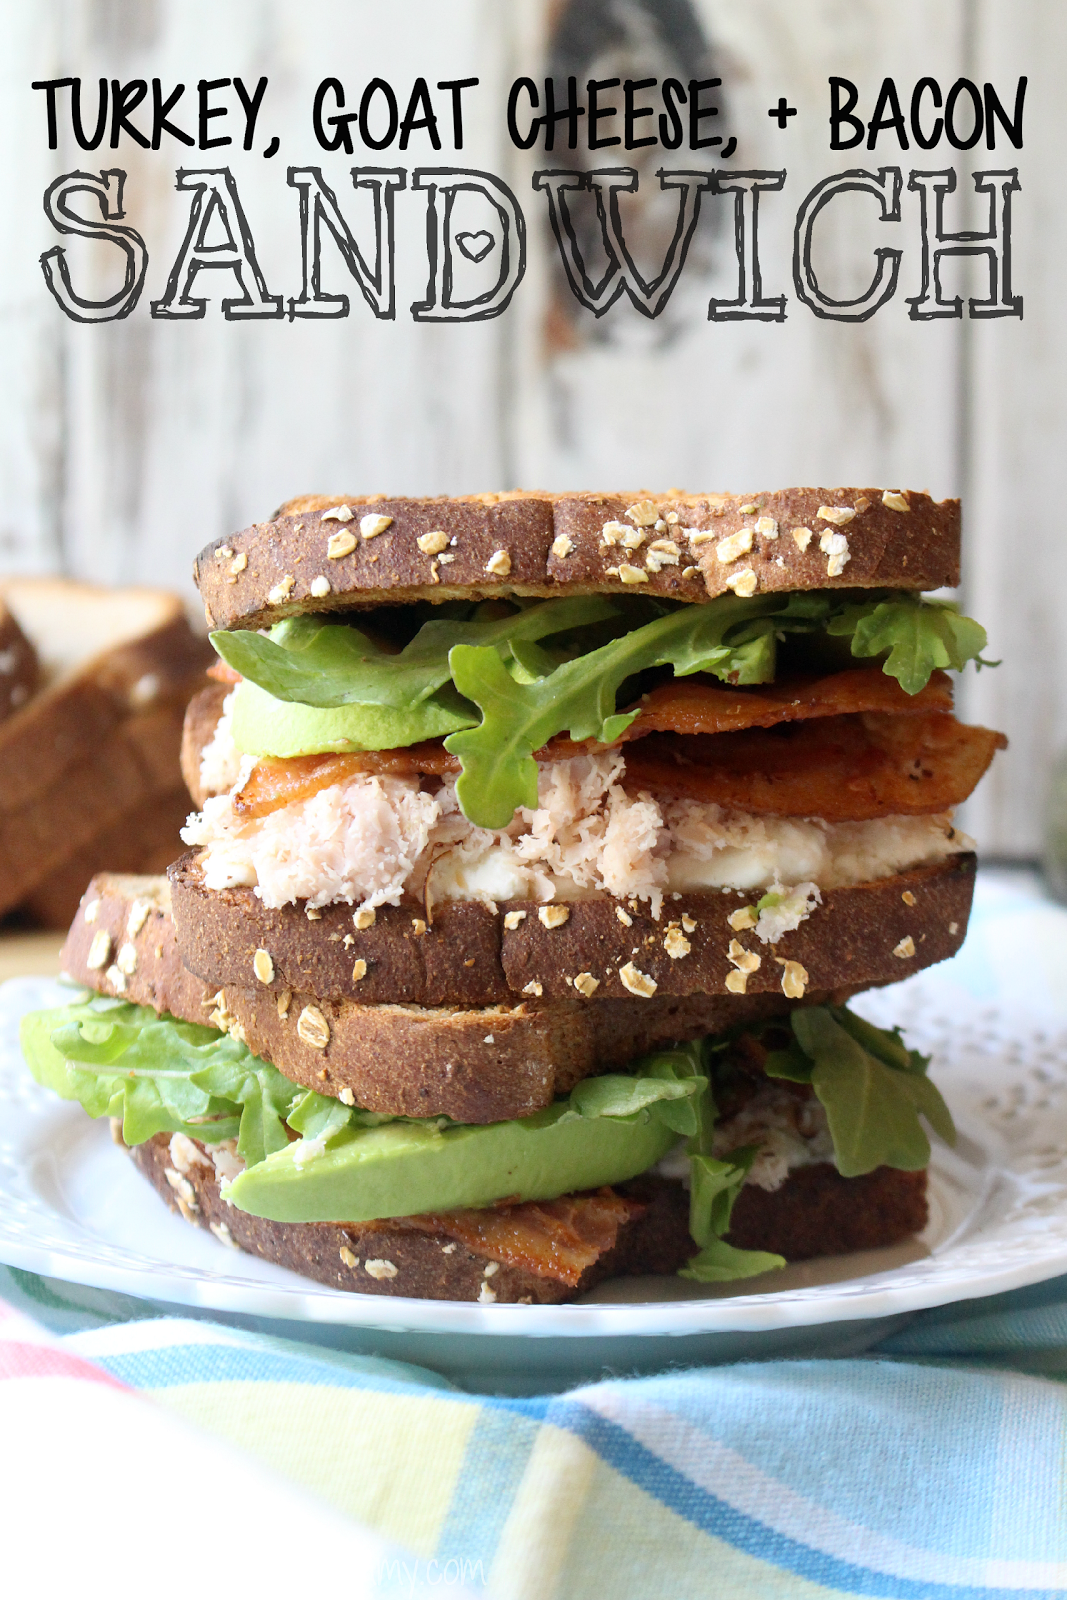 Turkey and Goat Cheese Sandwich Recipe